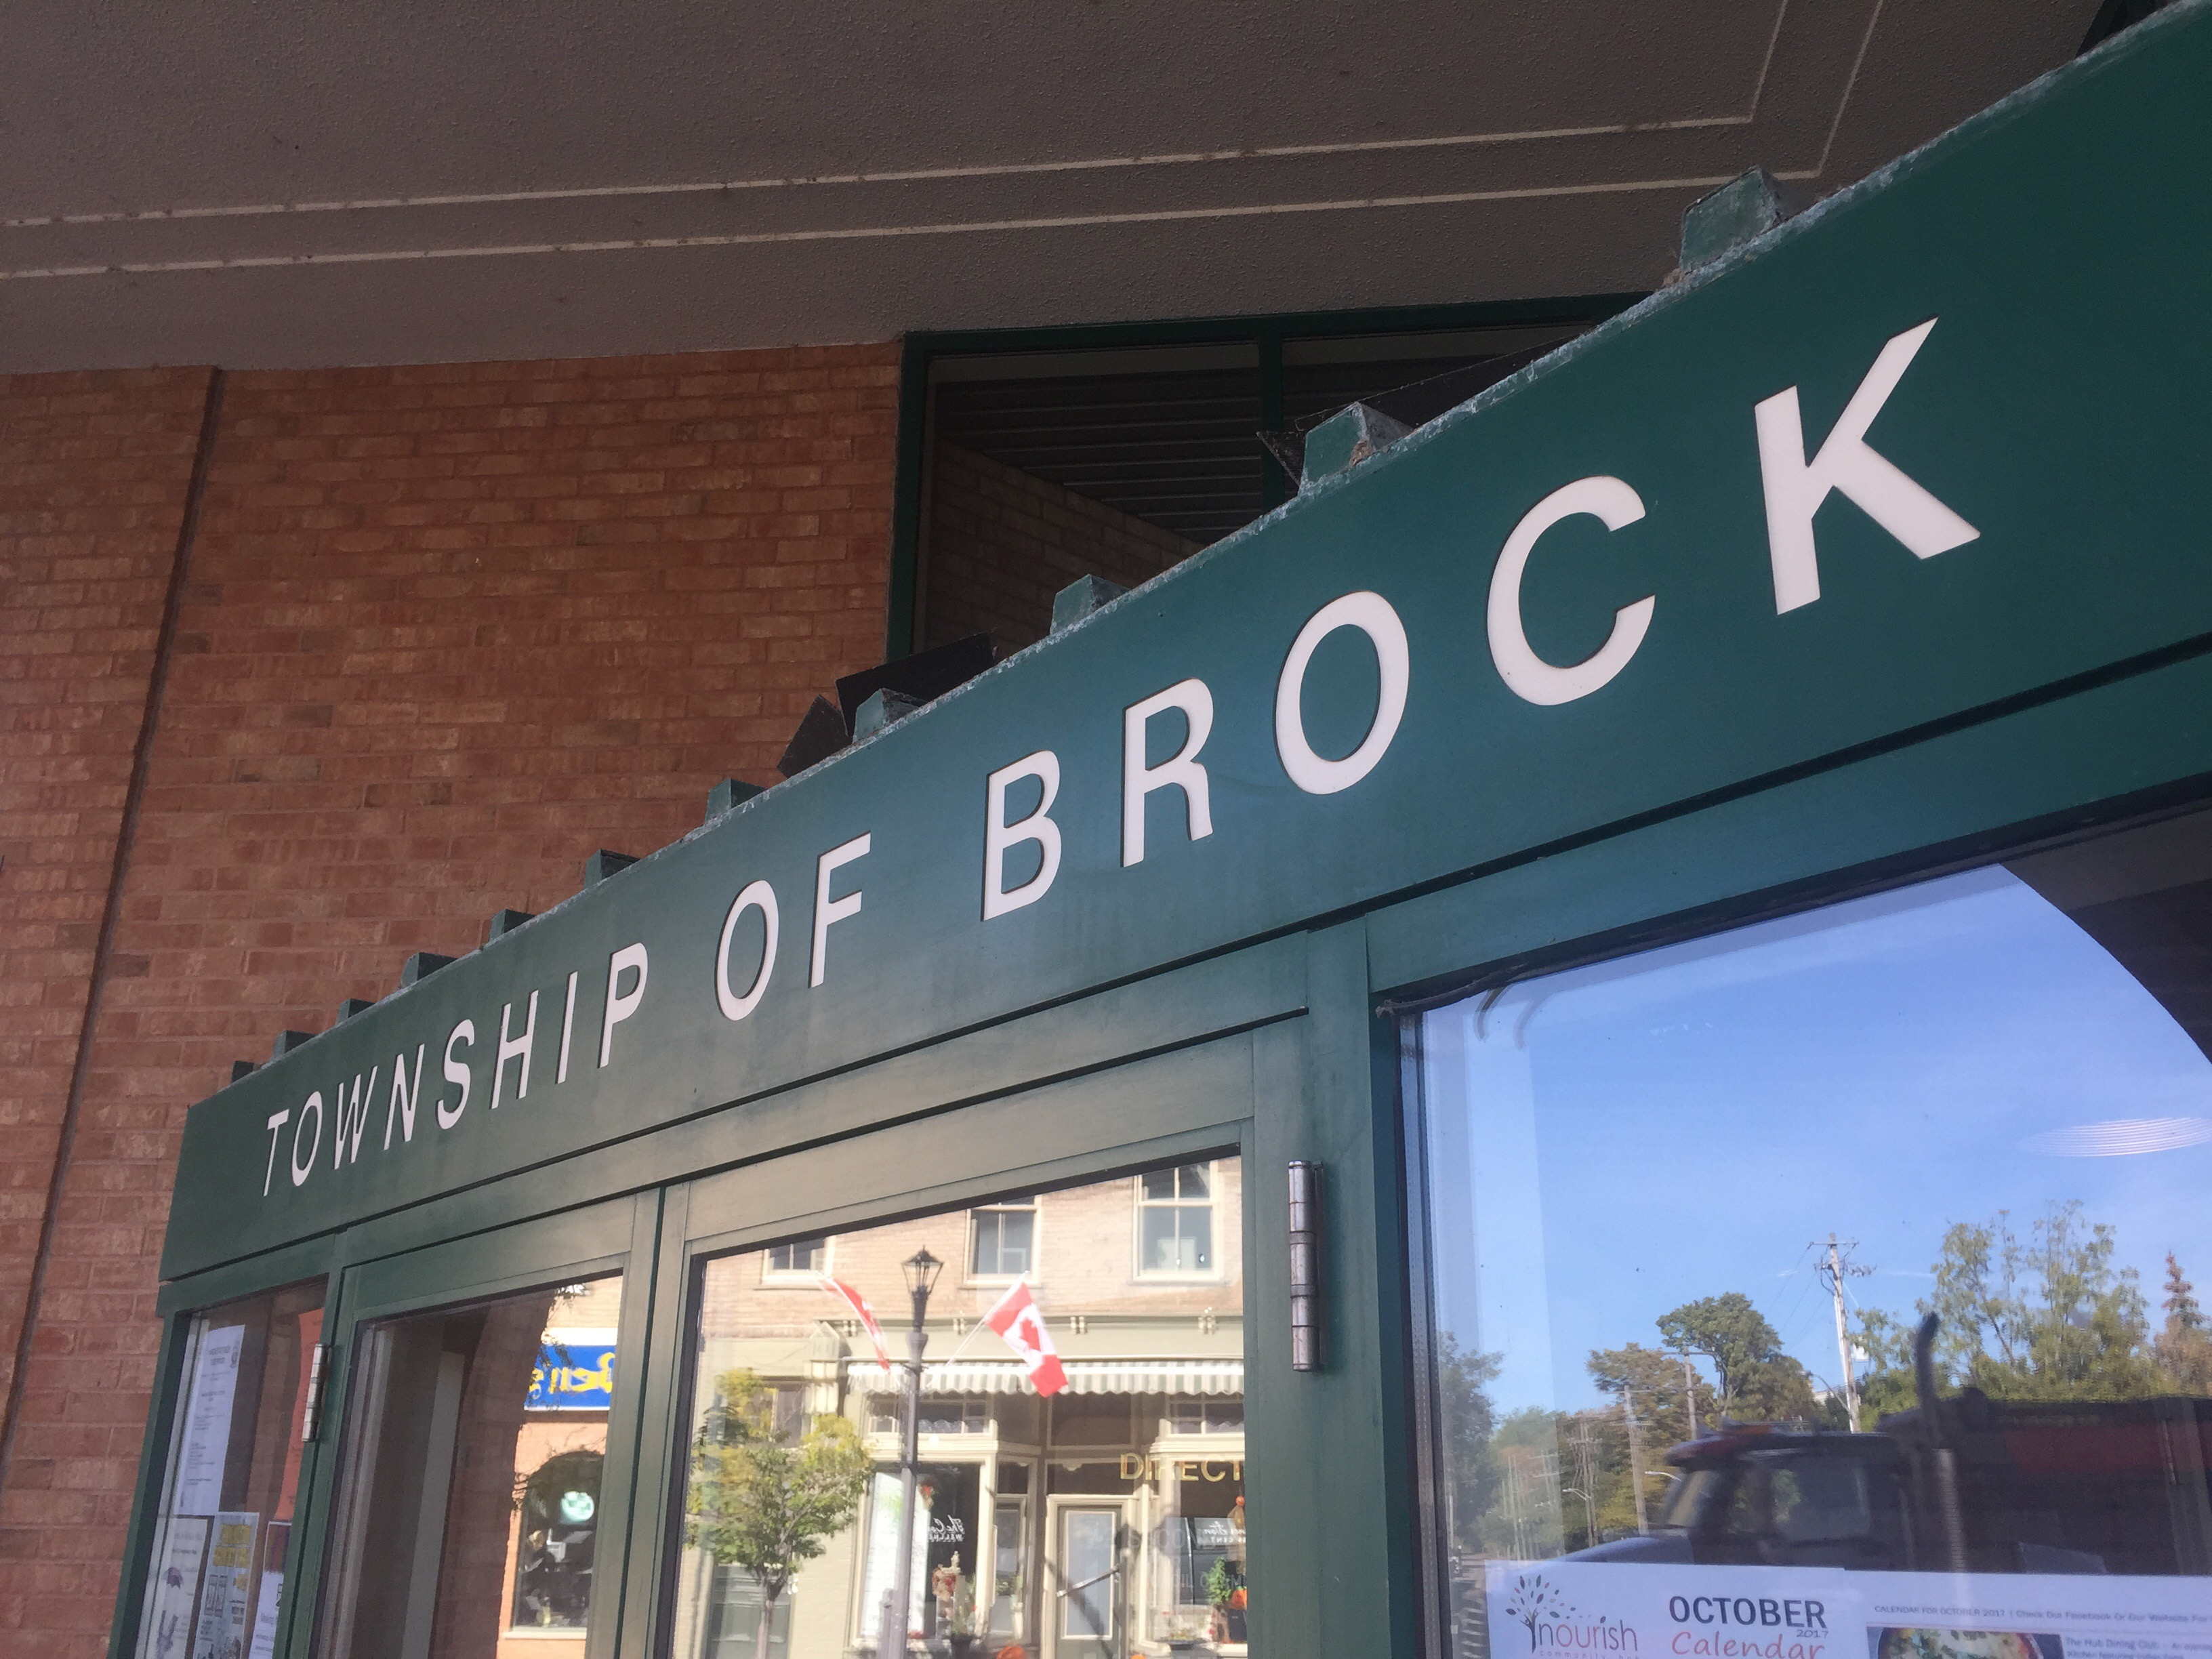 Most members of Brock council leaning towards seeking another term